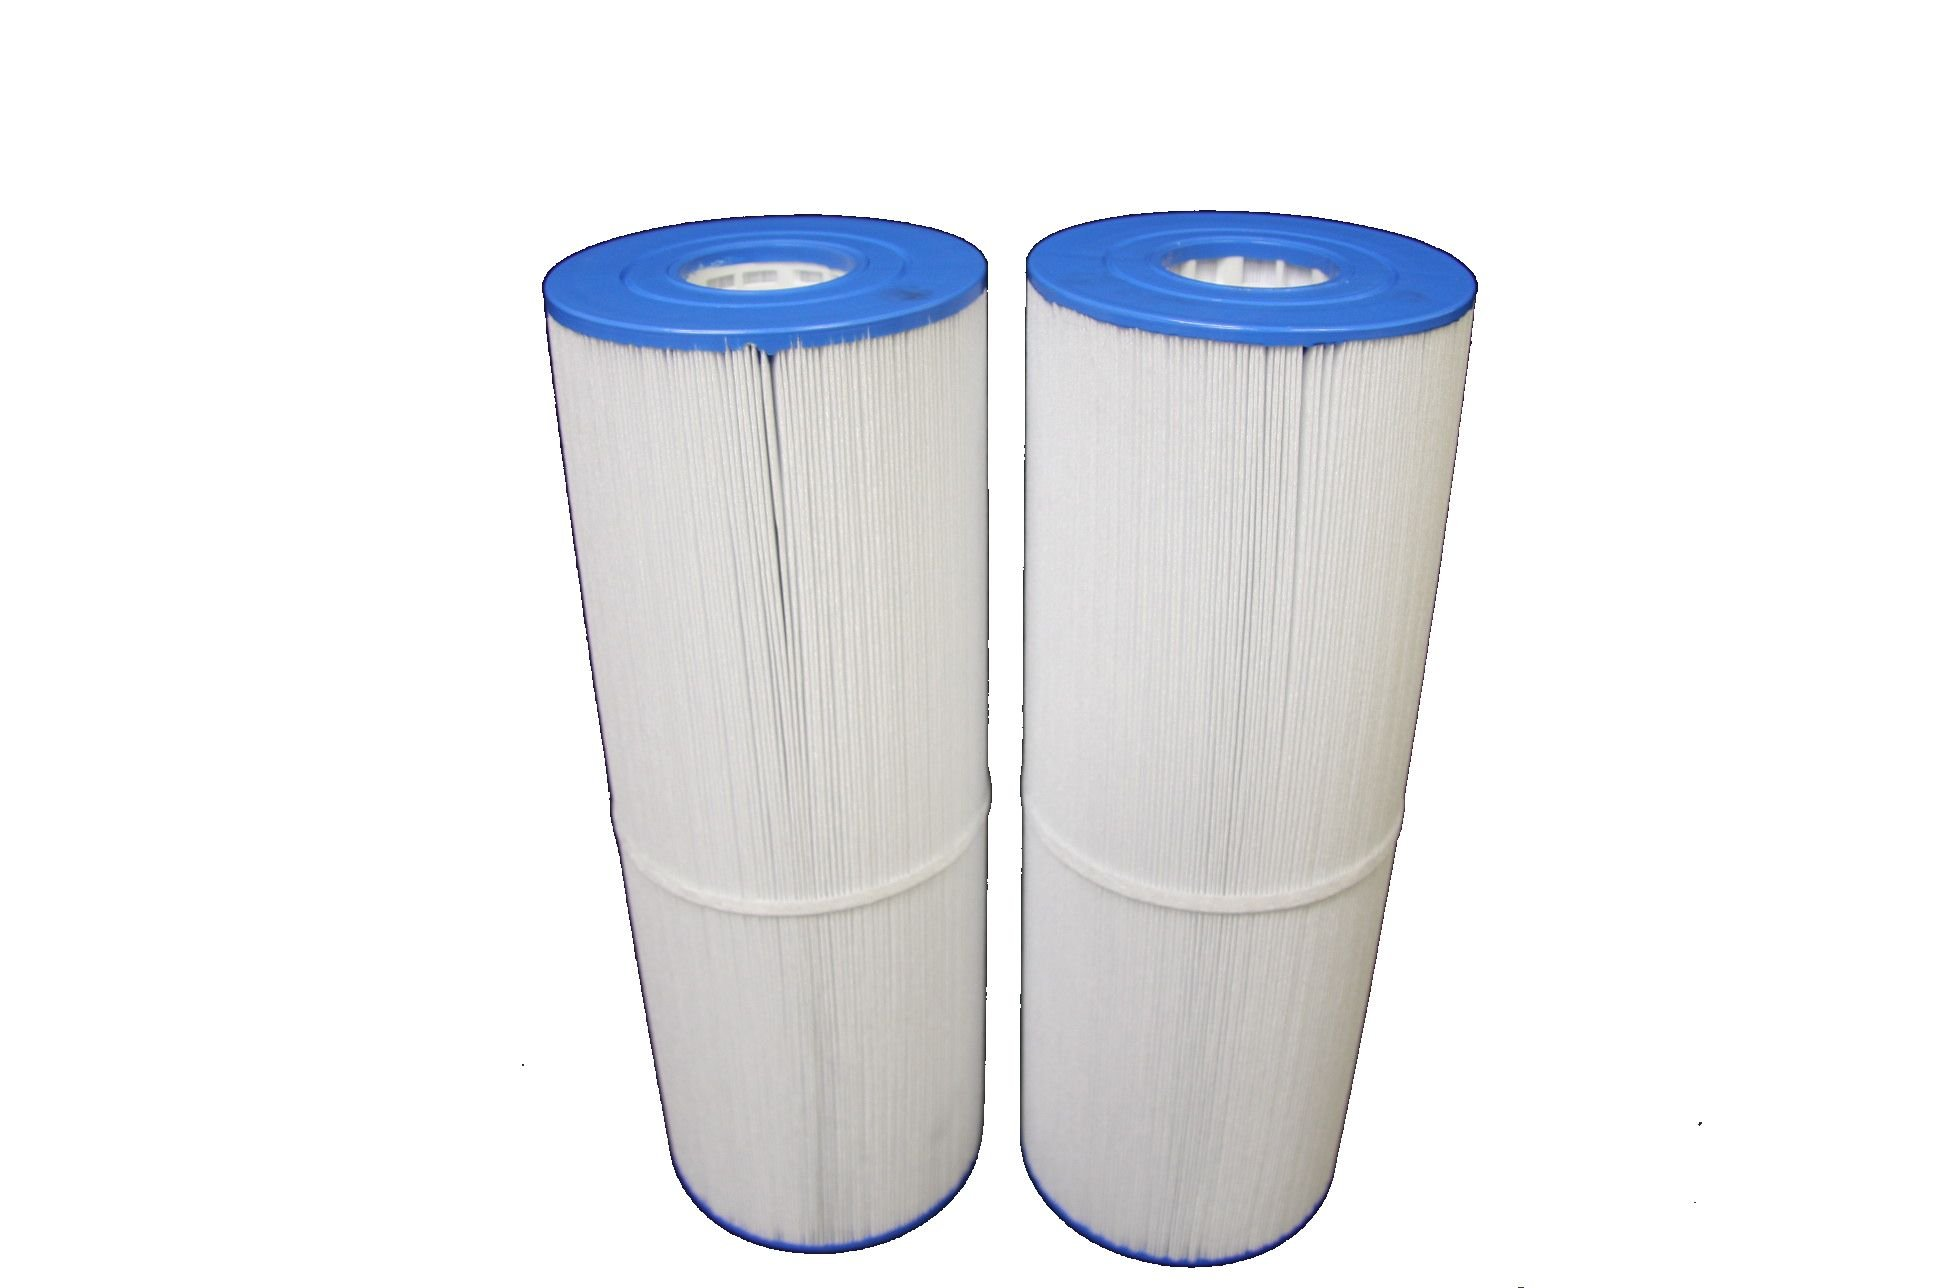 Guardian Filtration Products, Replacement Pool Spa Filter, For Unicel C-5374, Filbur FC-2971, Pleatco PLBS75 by Guardian Filtration Products